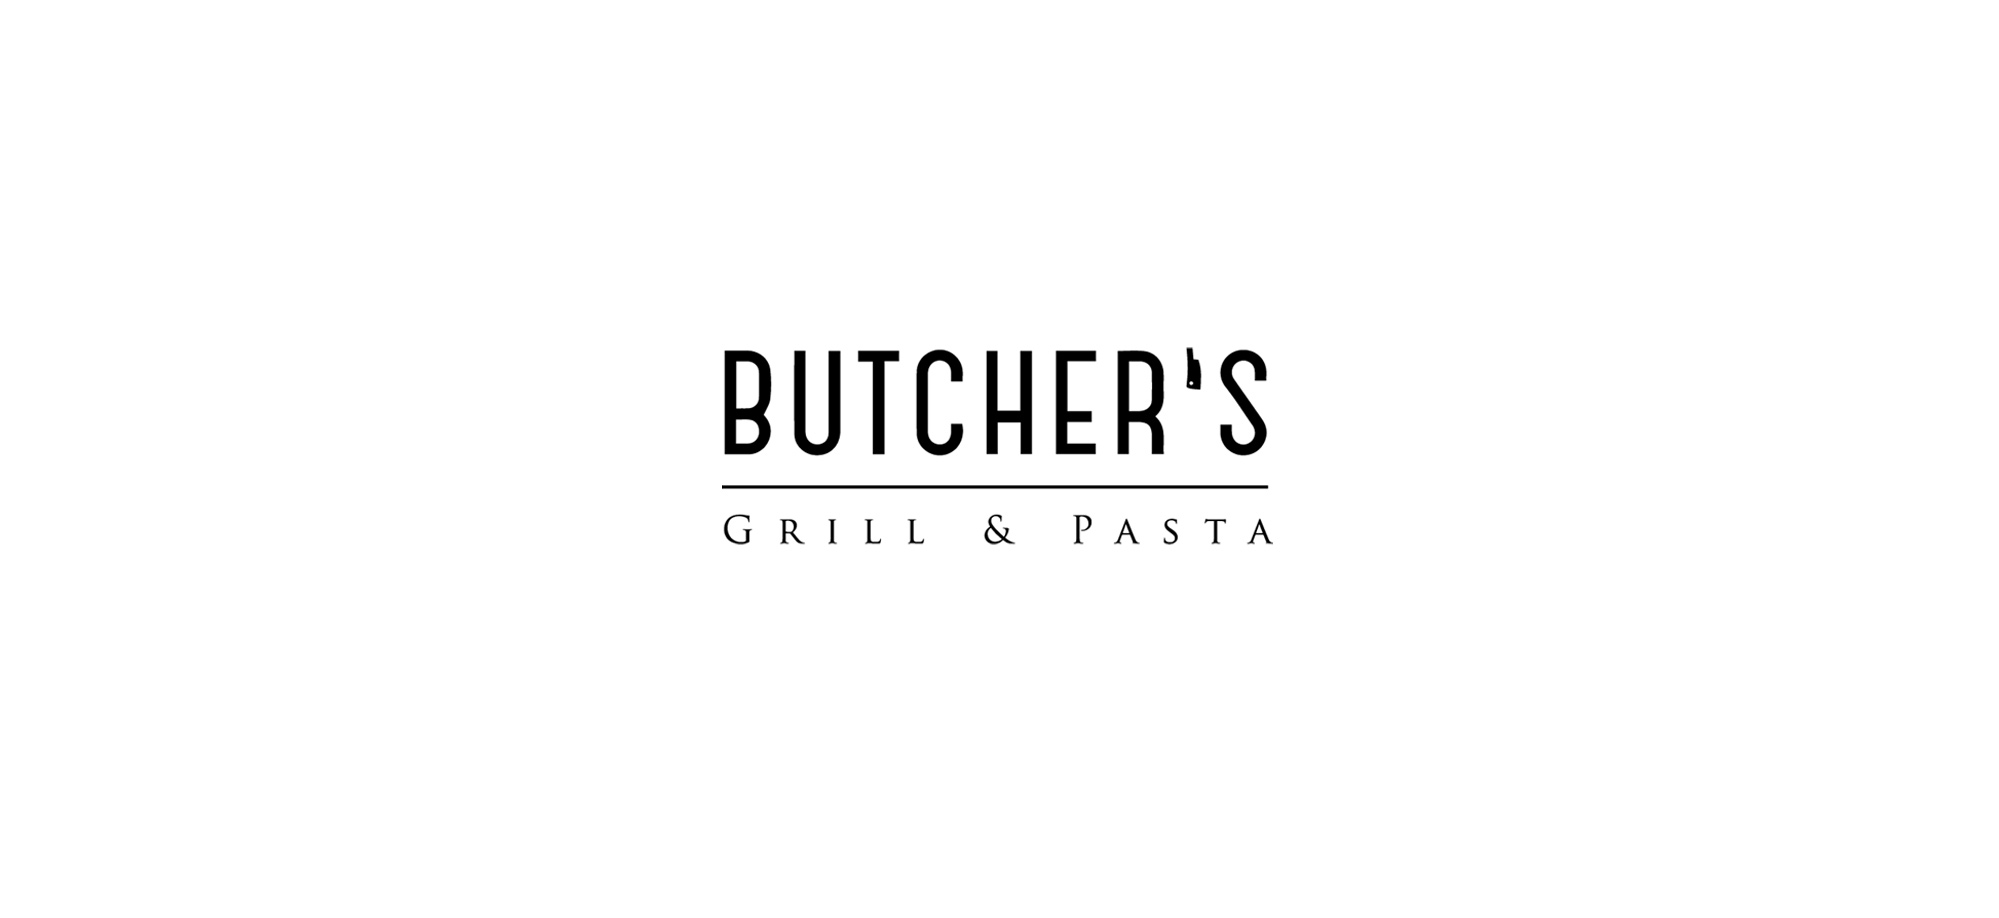 Restaurace Butcher's